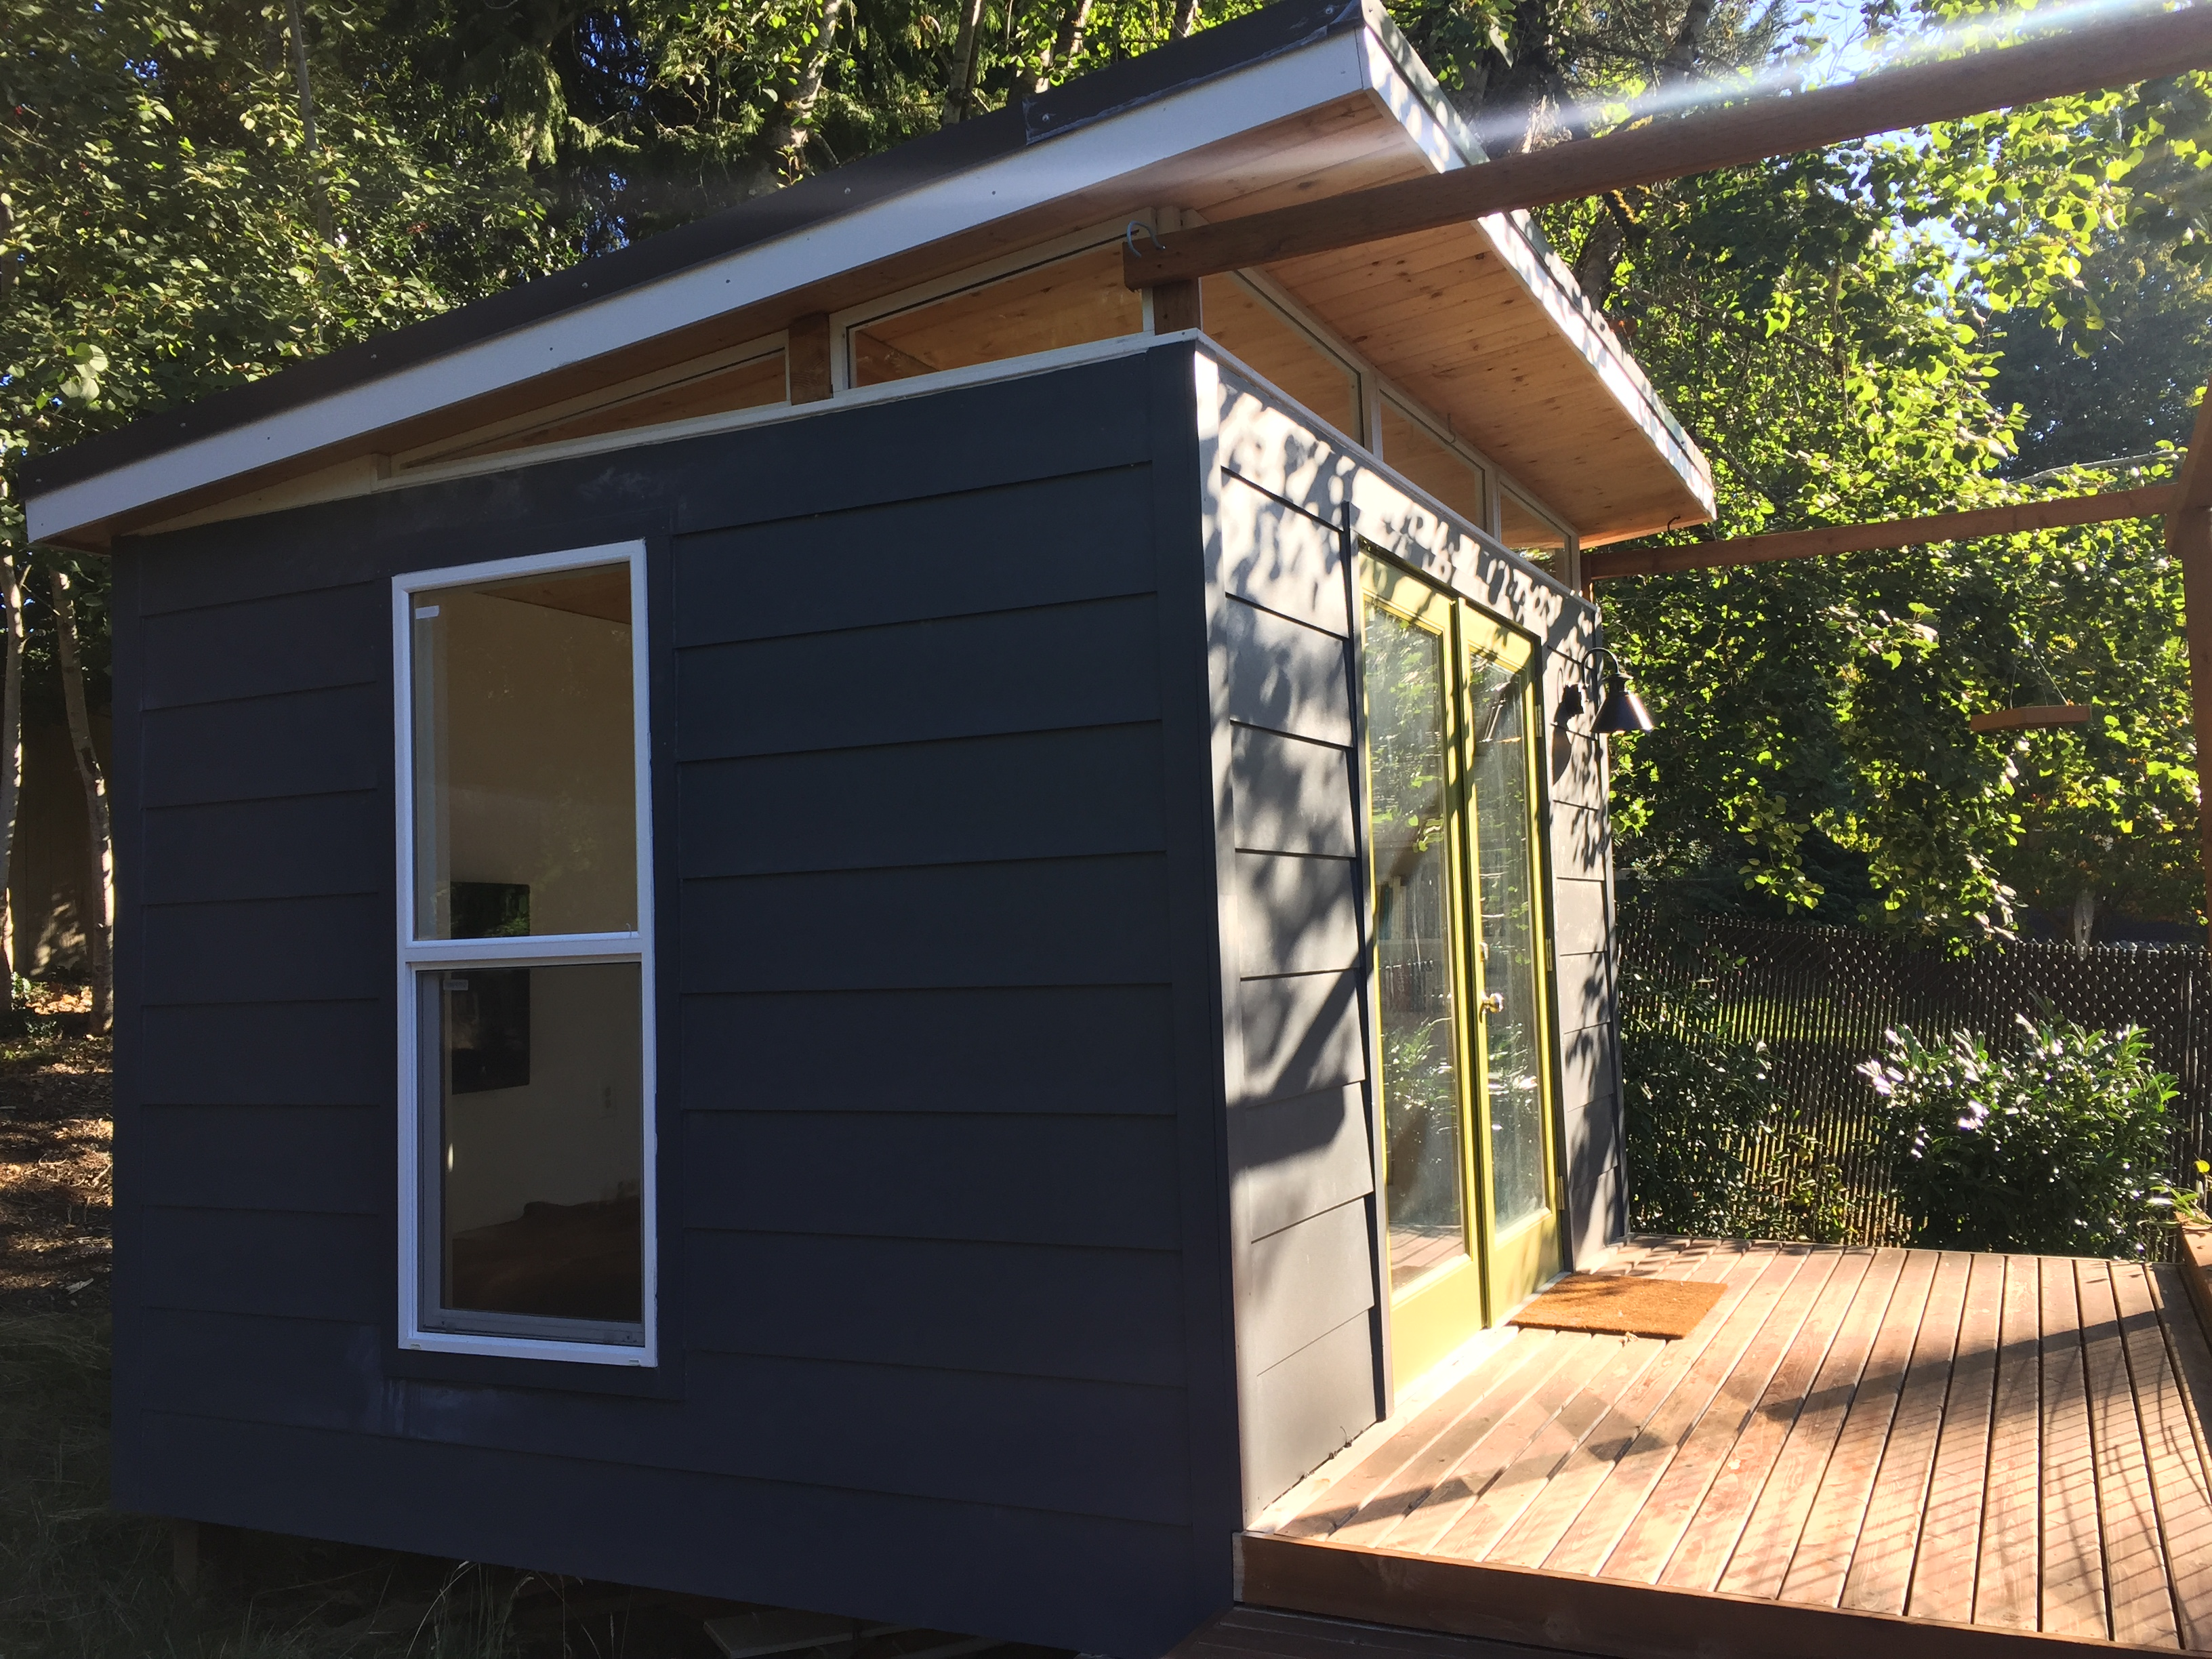 Being Able To Use The Angle Of The Sun For Light And Energy To Warm The Shed  Made A Difference To Her.